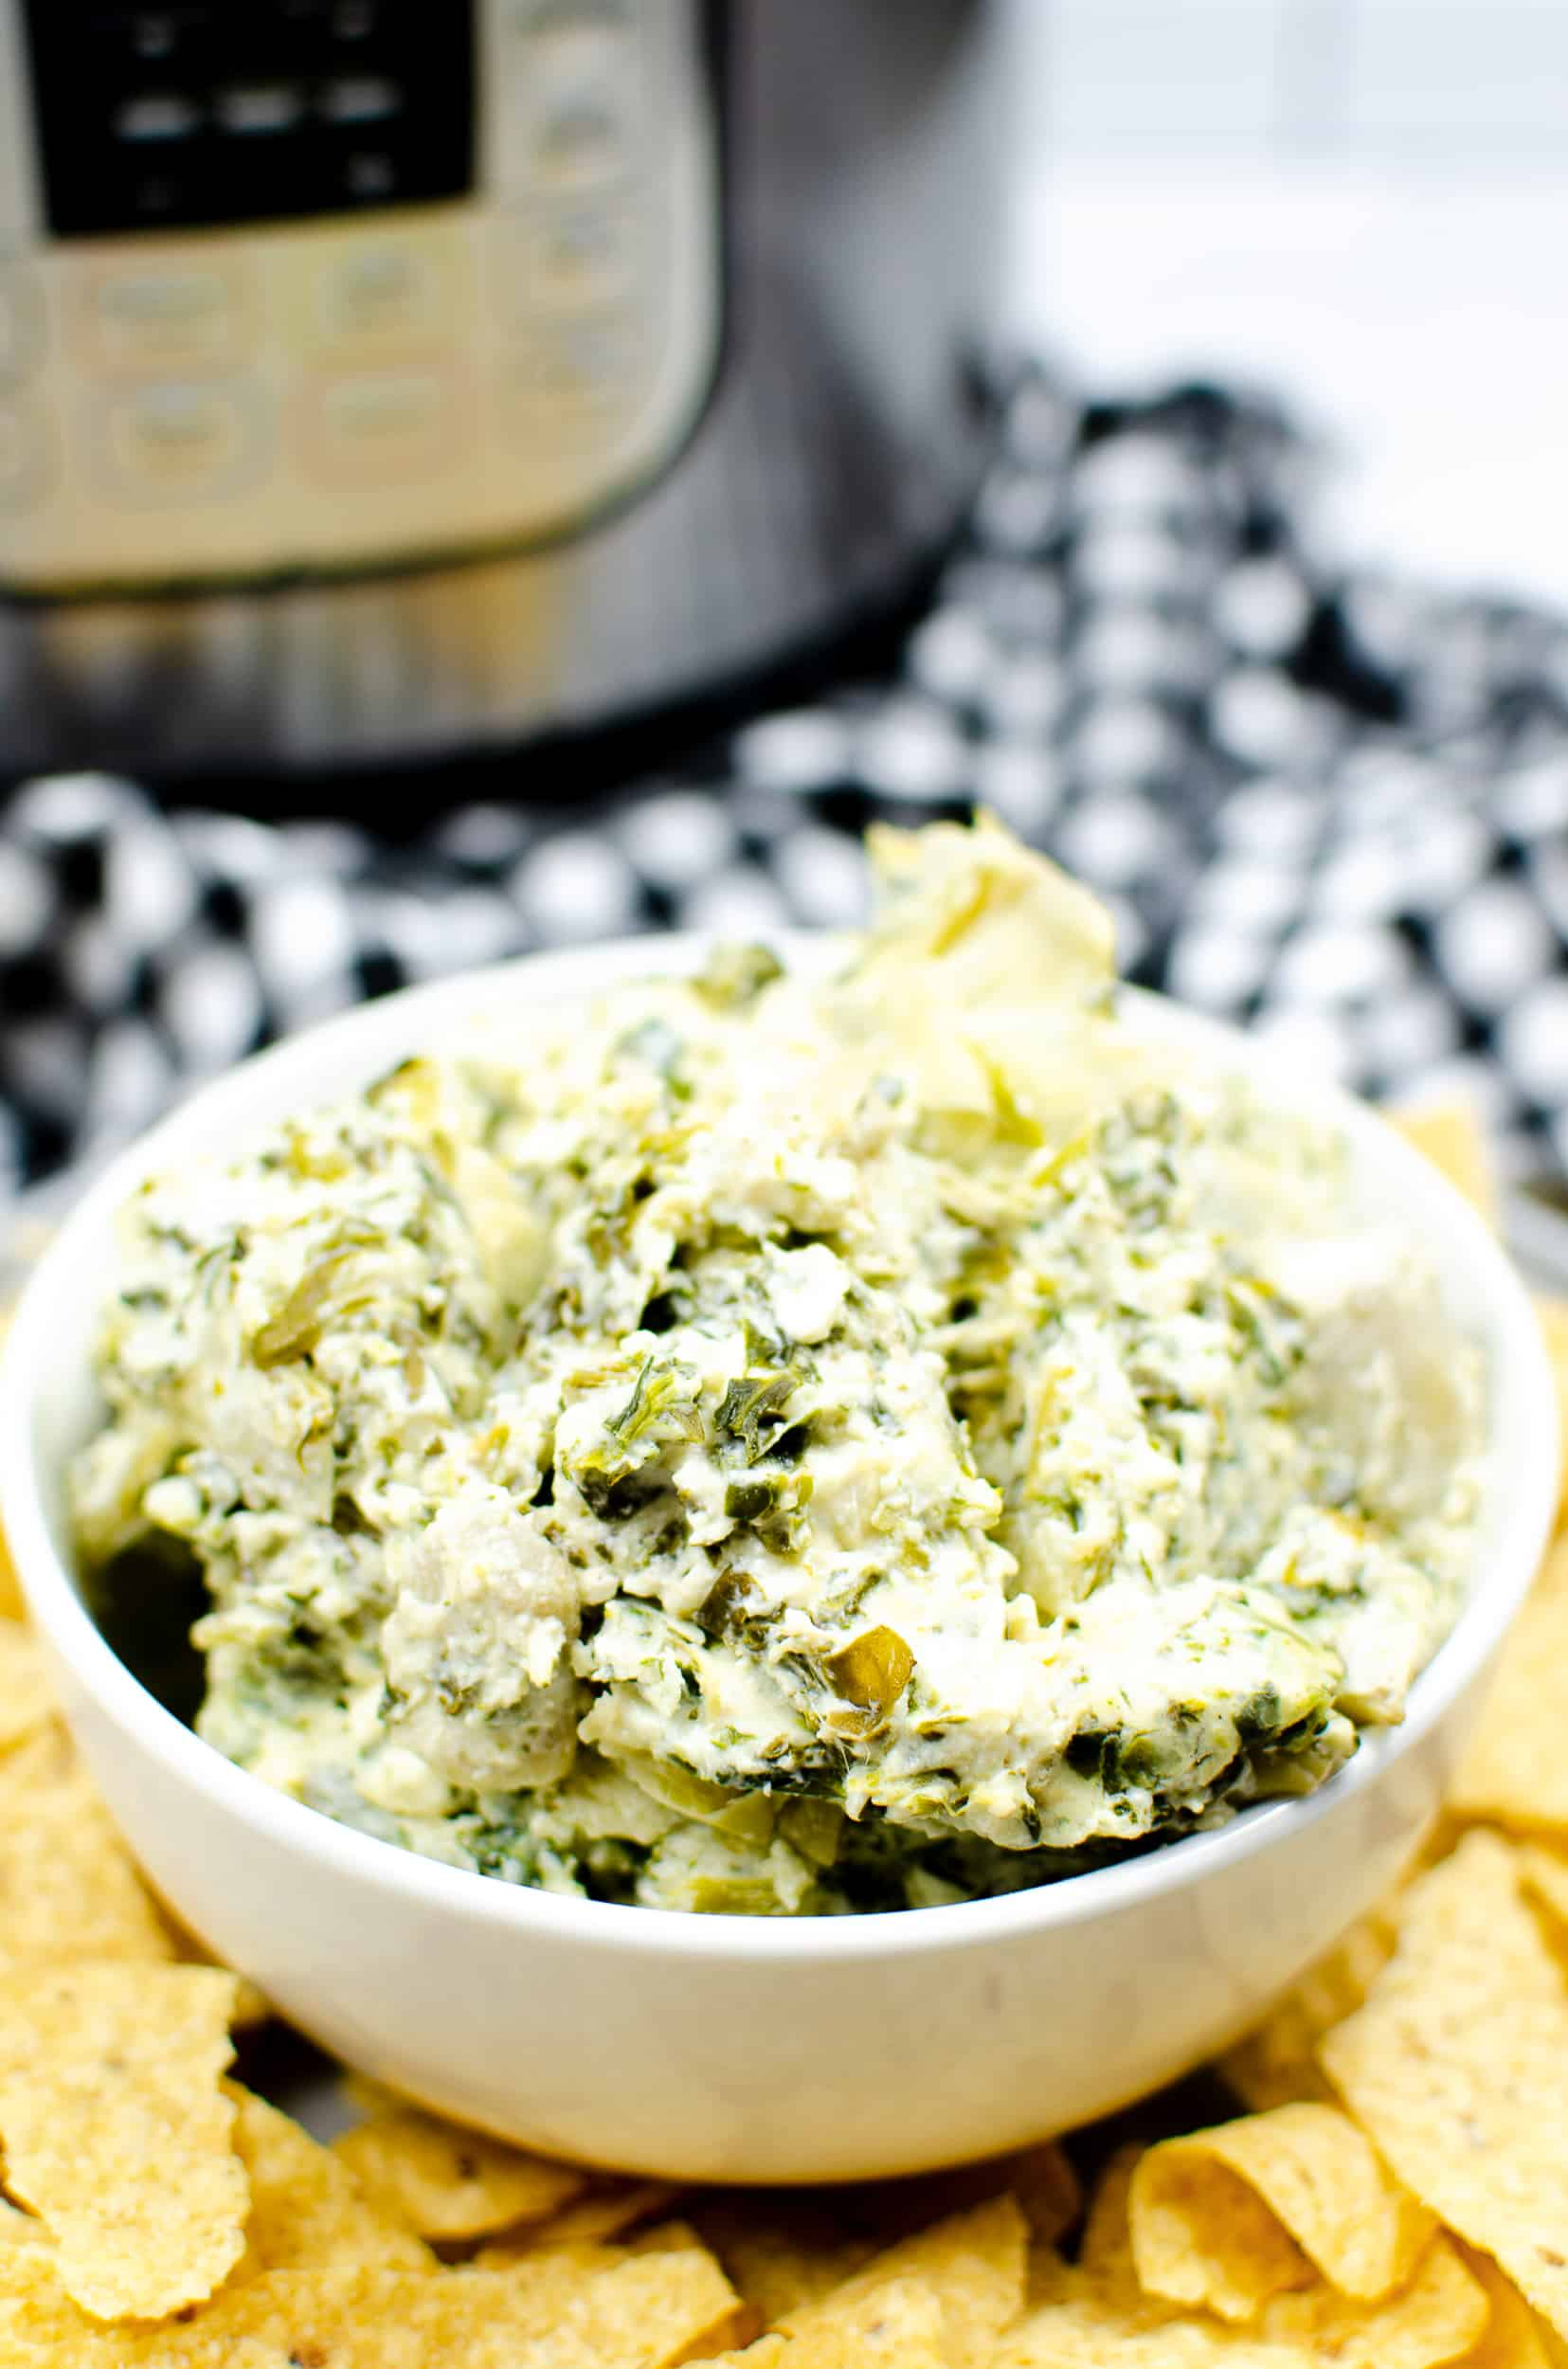 olive garden spinach artichoke dip in white bowl with chips